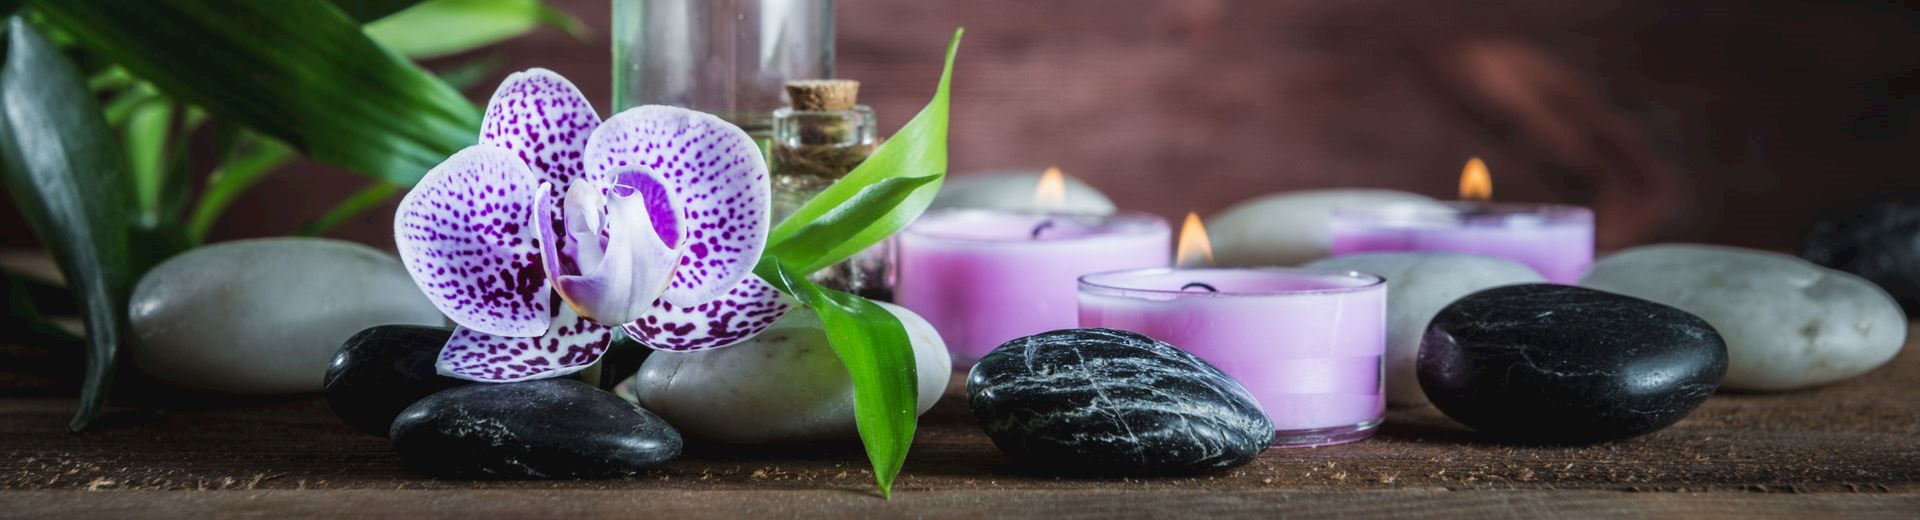 Spa Packages at Litchfield Park Resort